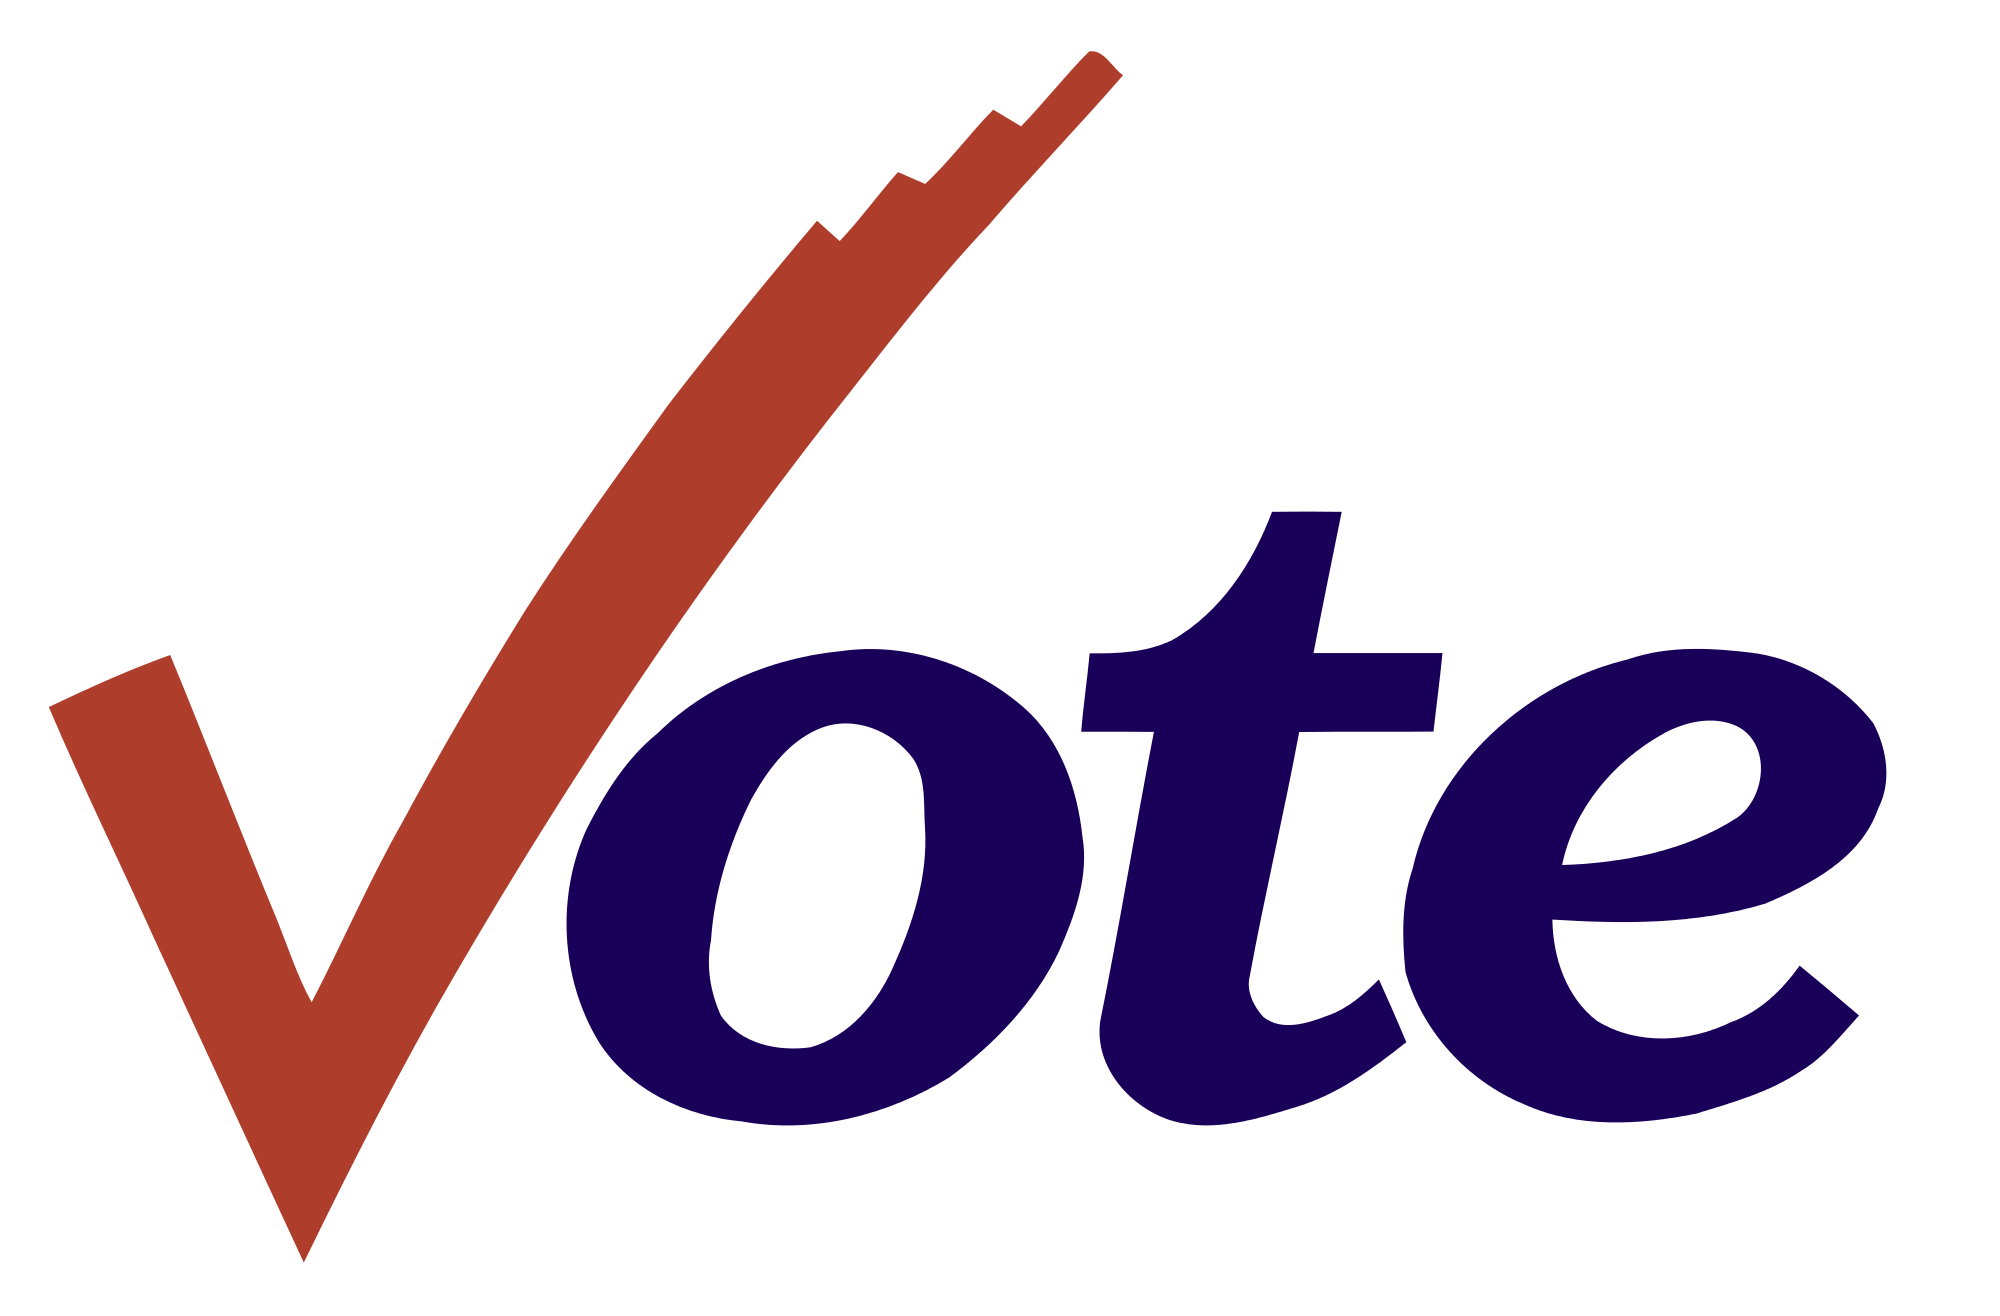 Vote check mark png. File with for v